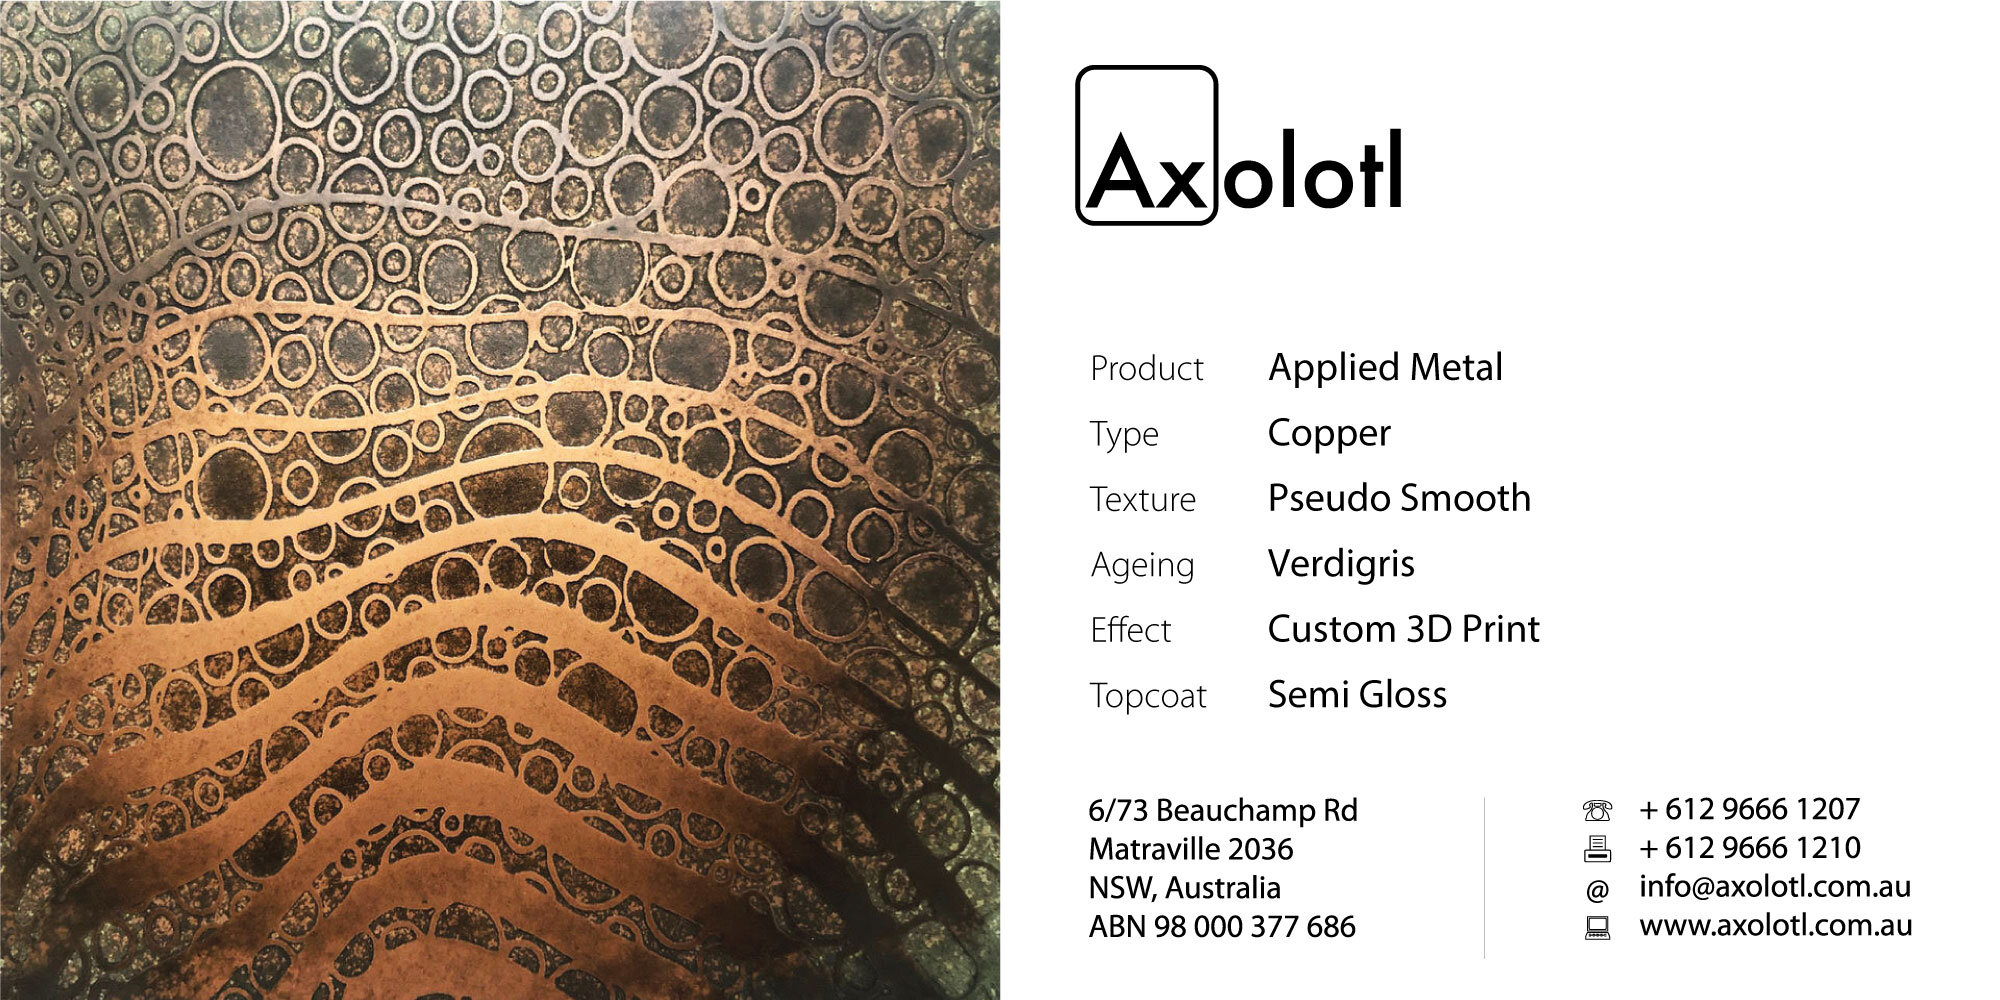 Axolotl_Copper_Pseudo-Smooth_Verdigris_Custom3DPrint.jpg